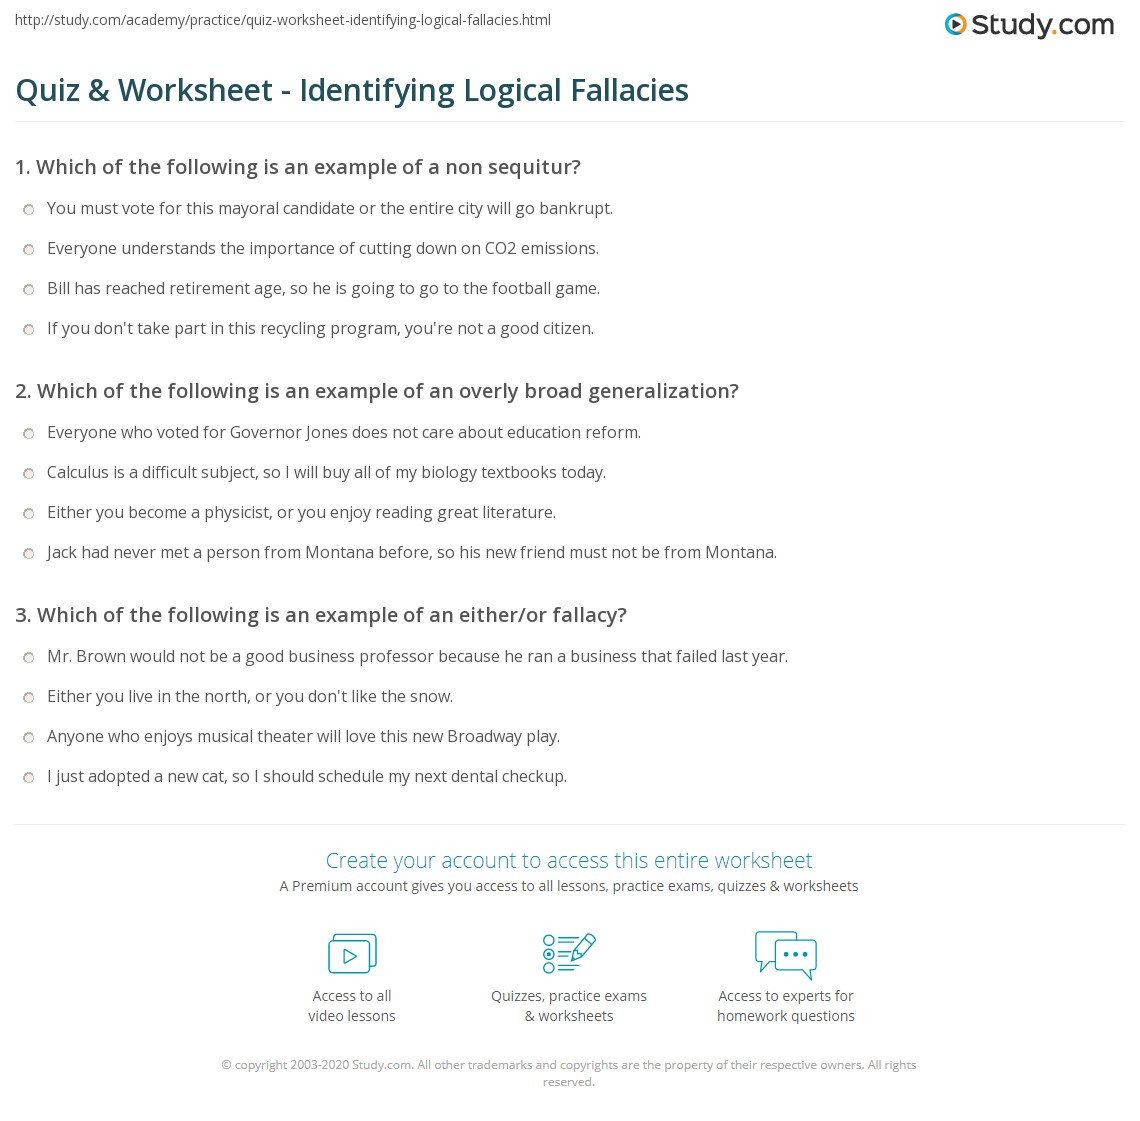 quiz worksheet identifying logical fallacies. Black Bedroom Furniture Sets. Home Design Ideas